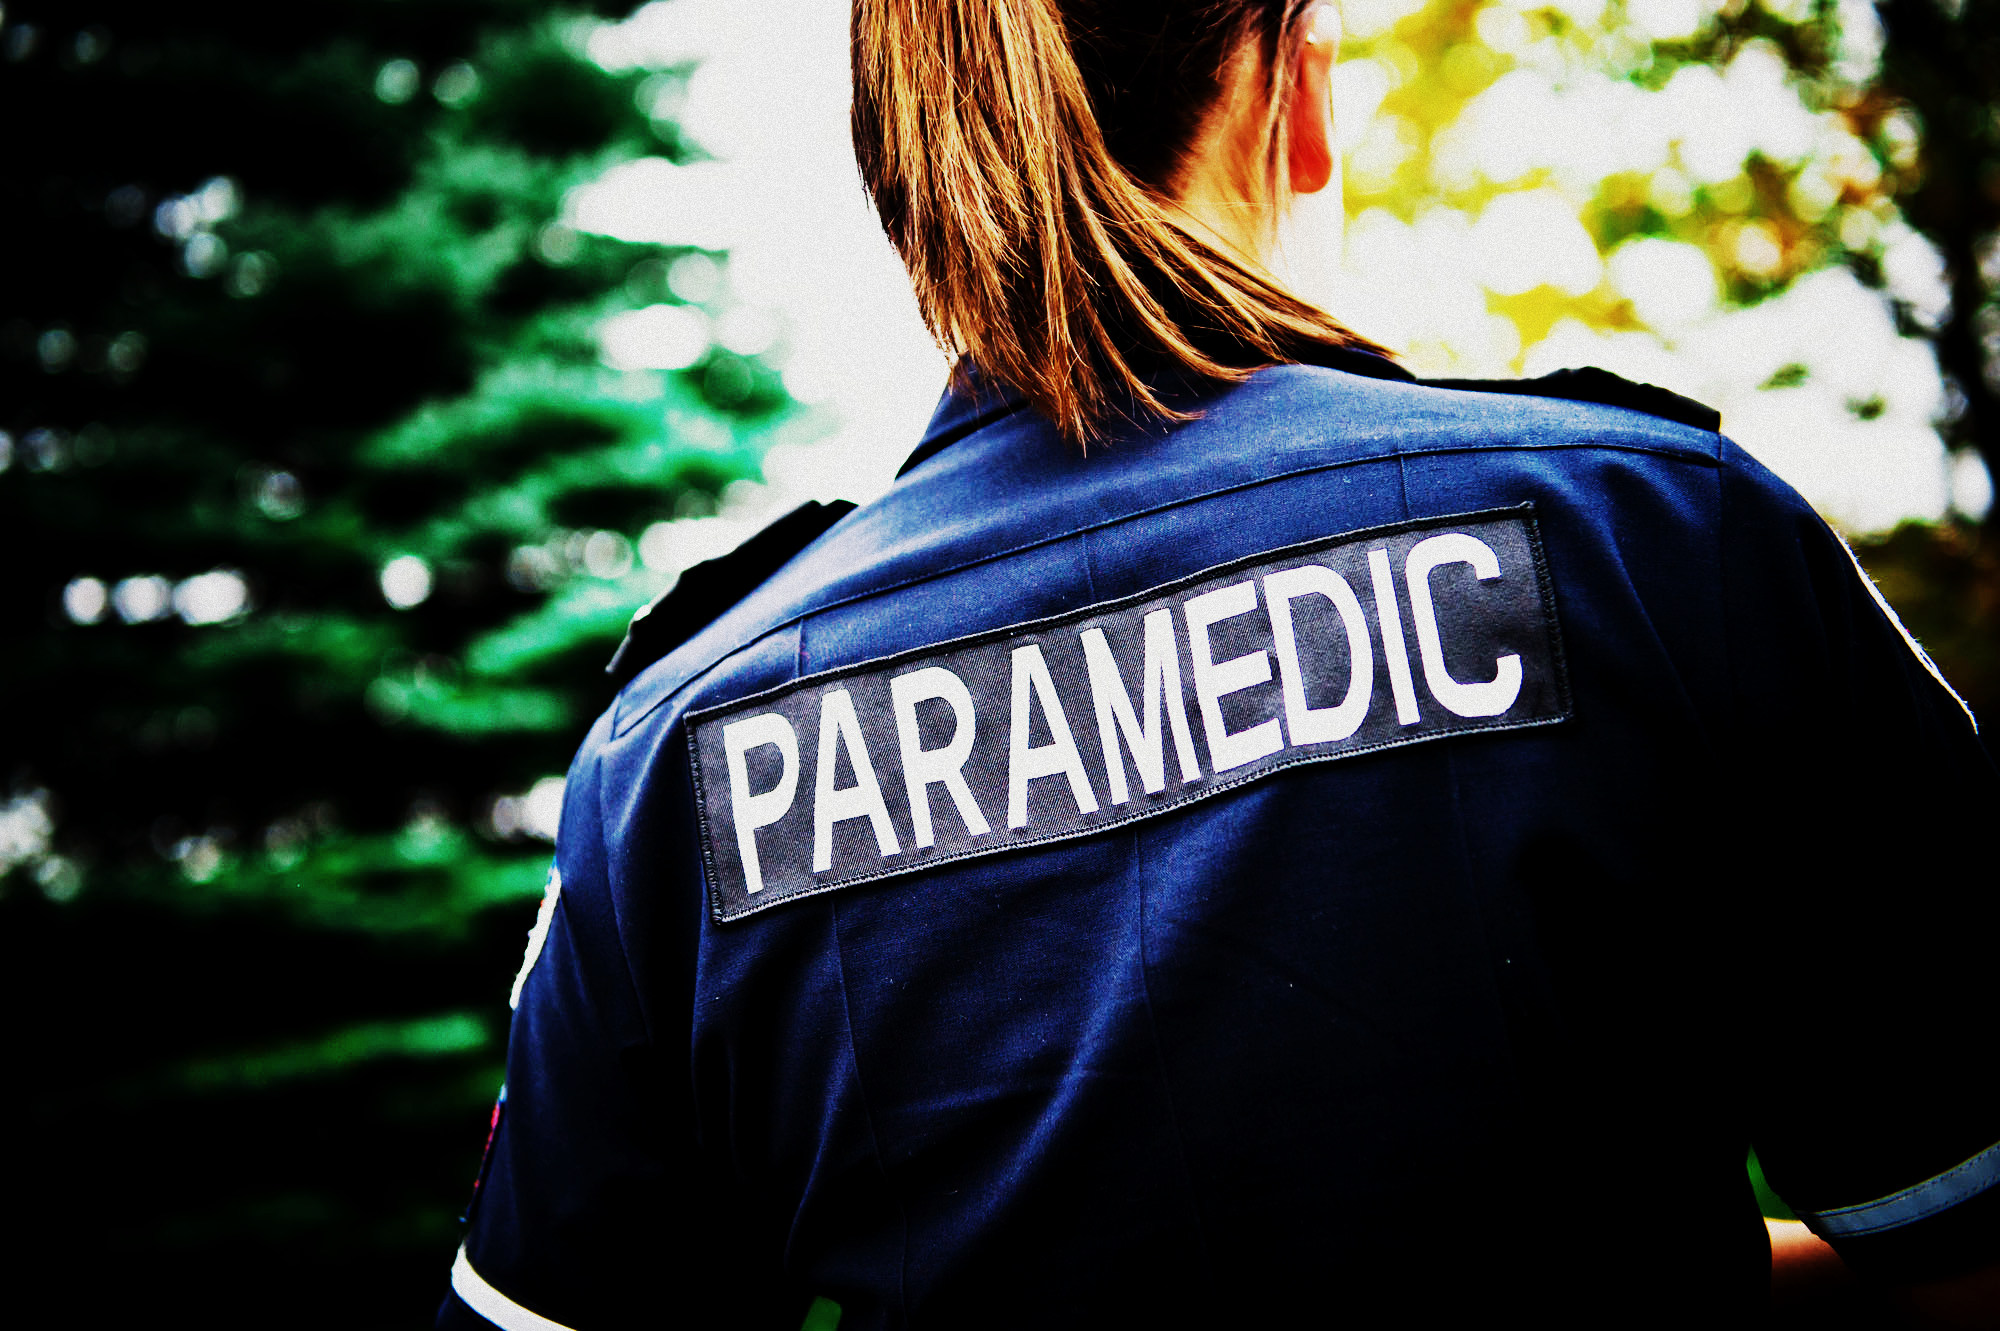 paramedic wallpaper - photo #33